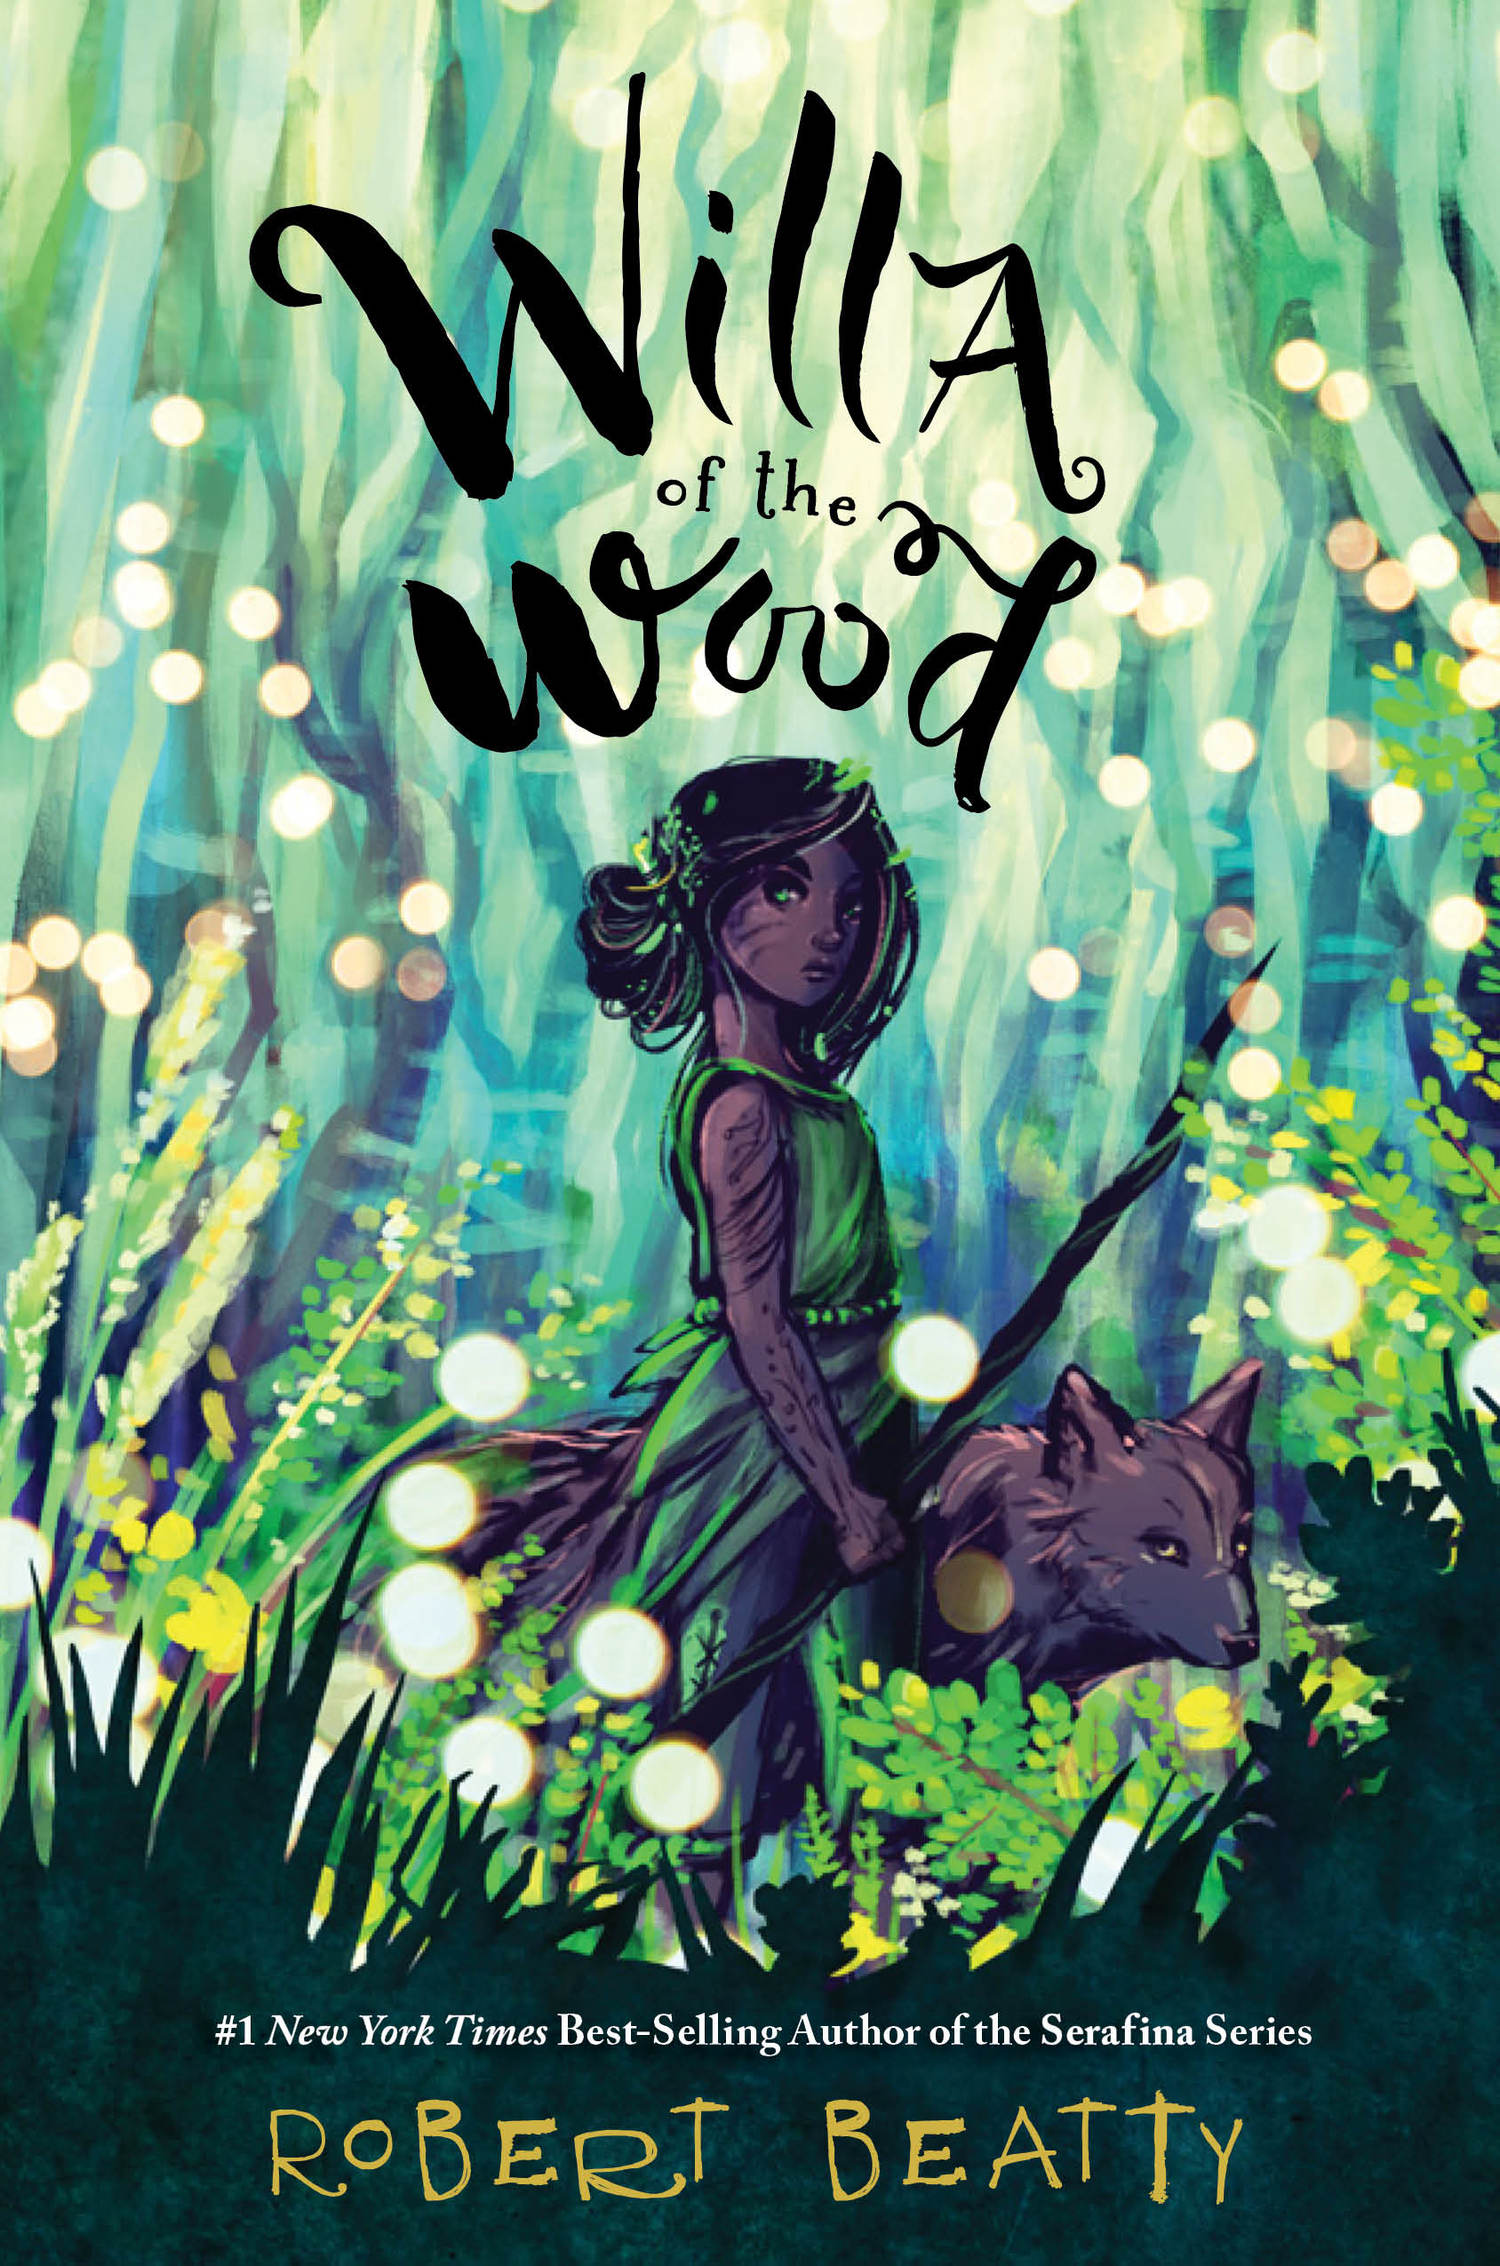 BWW Interview: New York Times Best-Selling Author Robert Beatty's new book WILLA OF THE WOOD is out today!